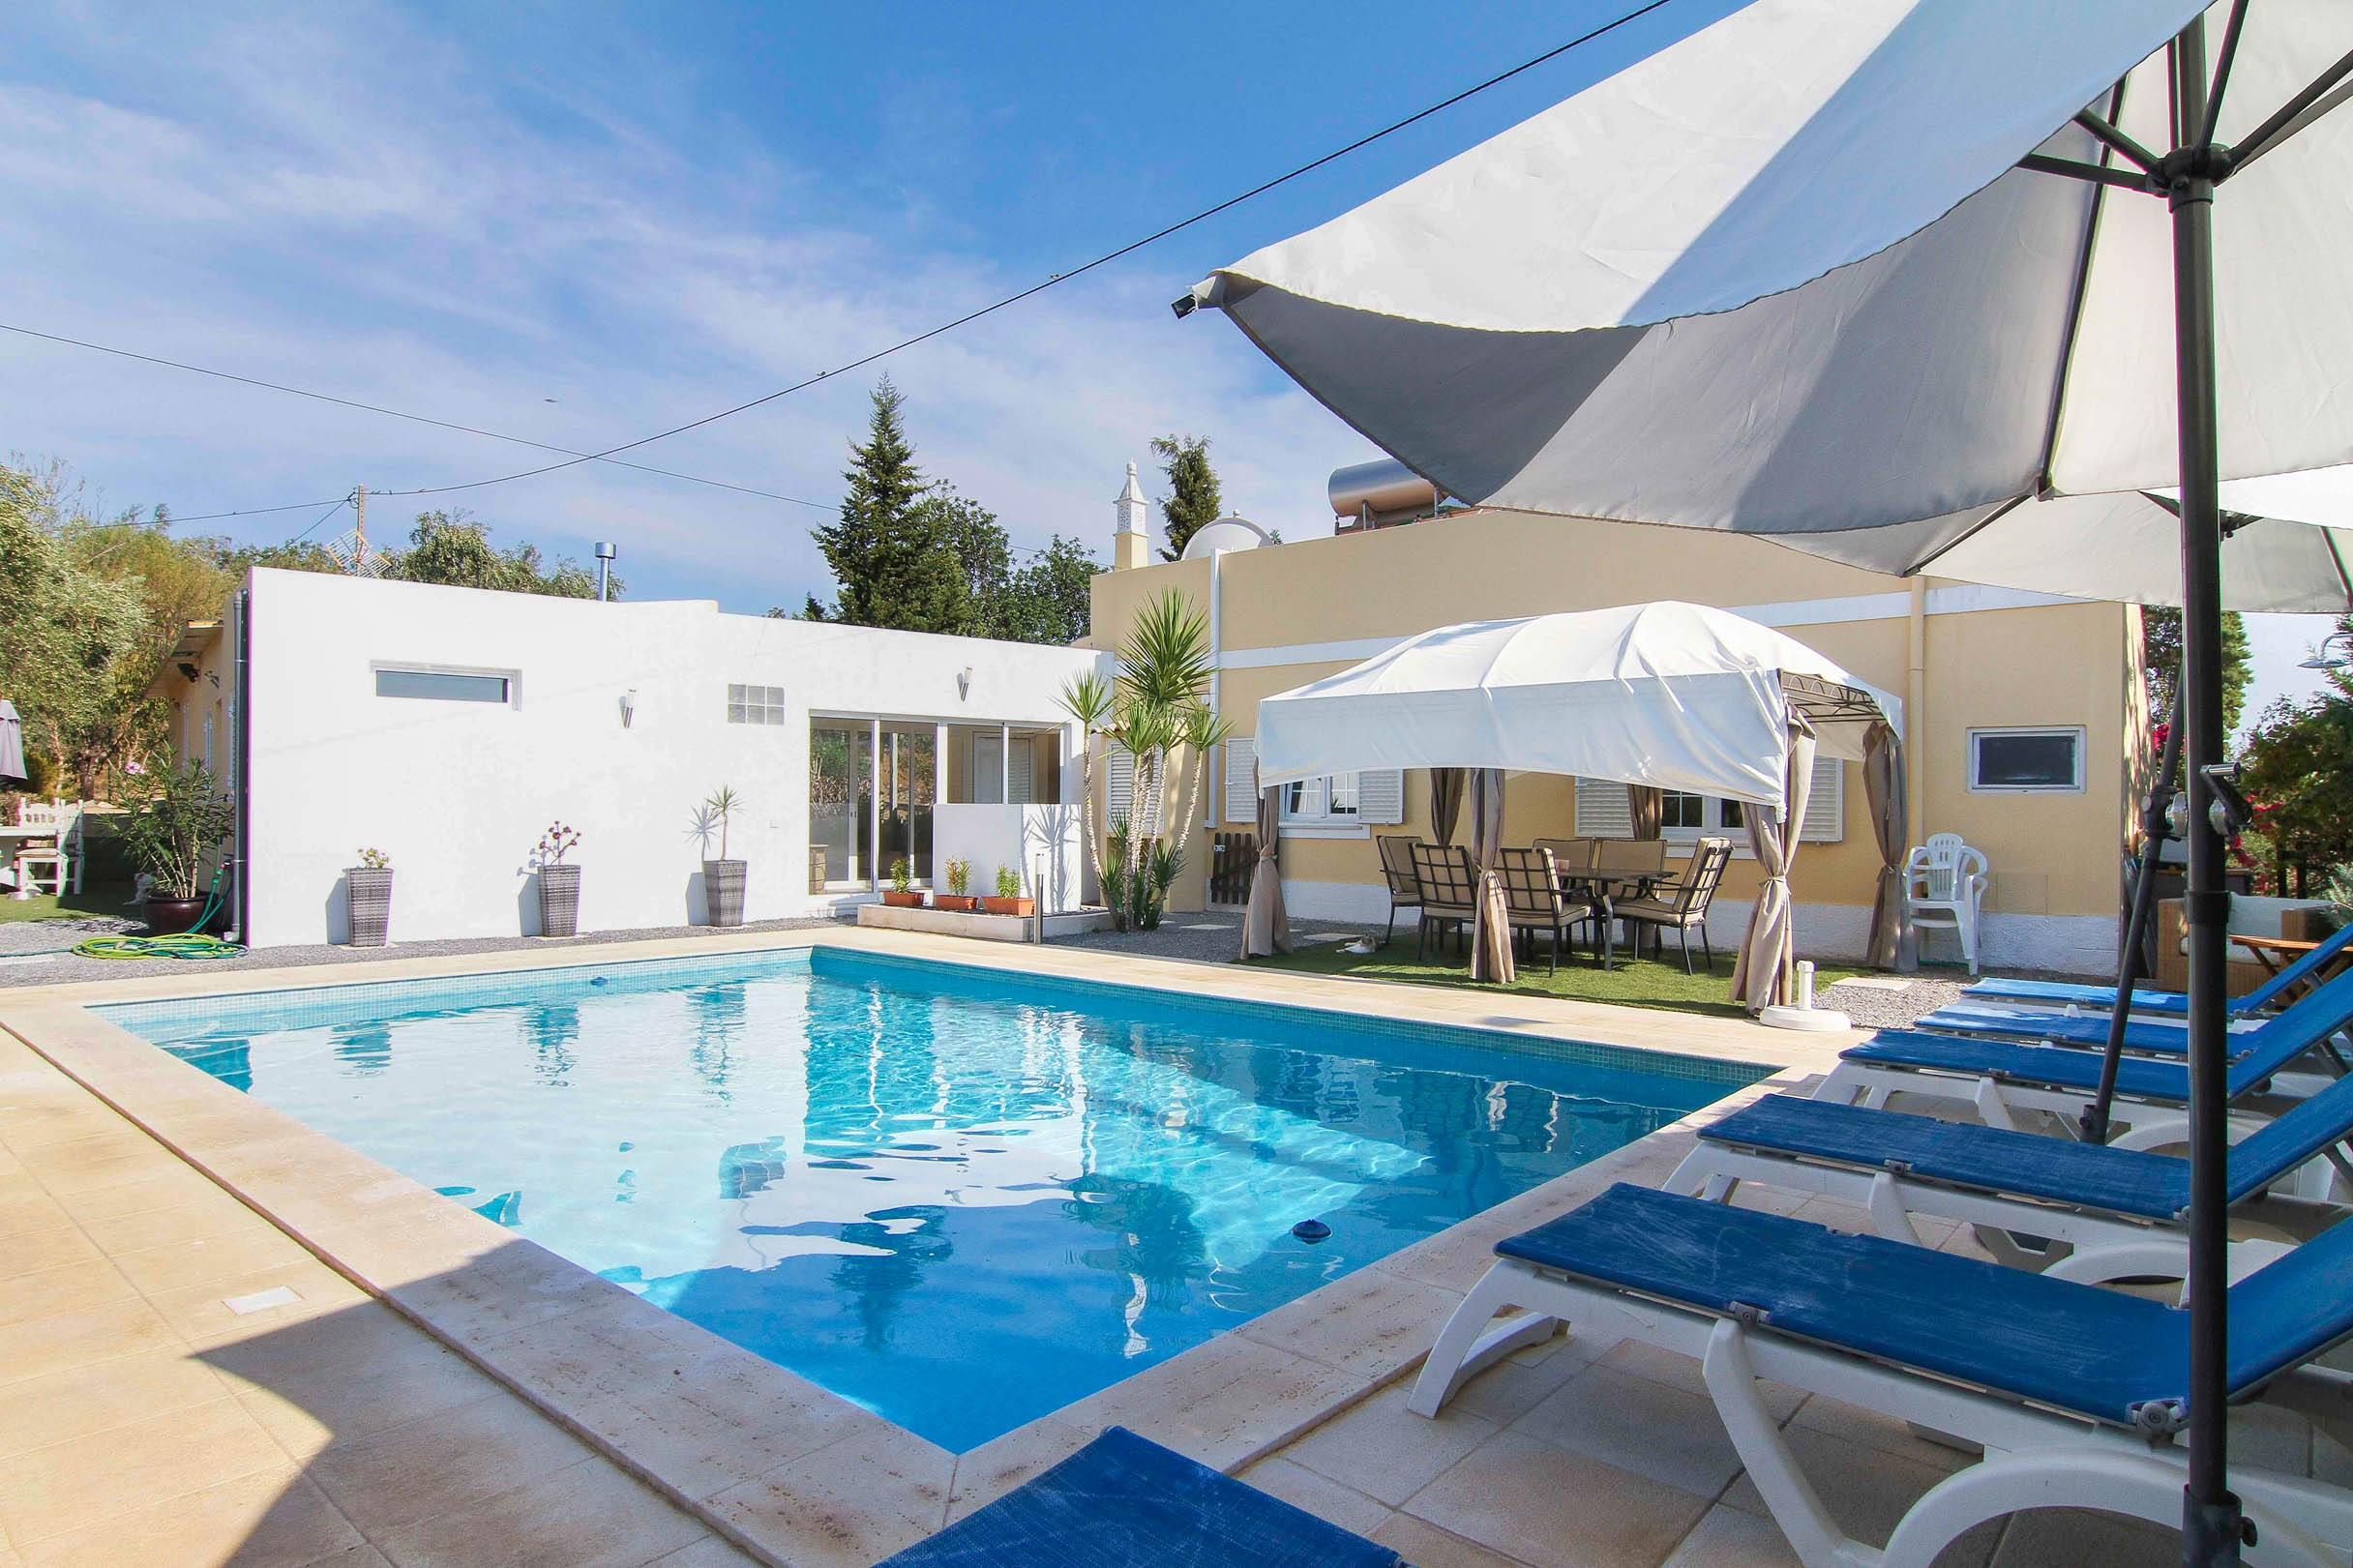 3 + 1 bedroom villa with pool and nice outside space near Tavira | TV1071 3+1 bedroom villa in a quiet area, close to Tavira and all amenities. It has a pool and a great outside area, perfect for al fresco dinig and sun bathing. It has also a good rental pontential.